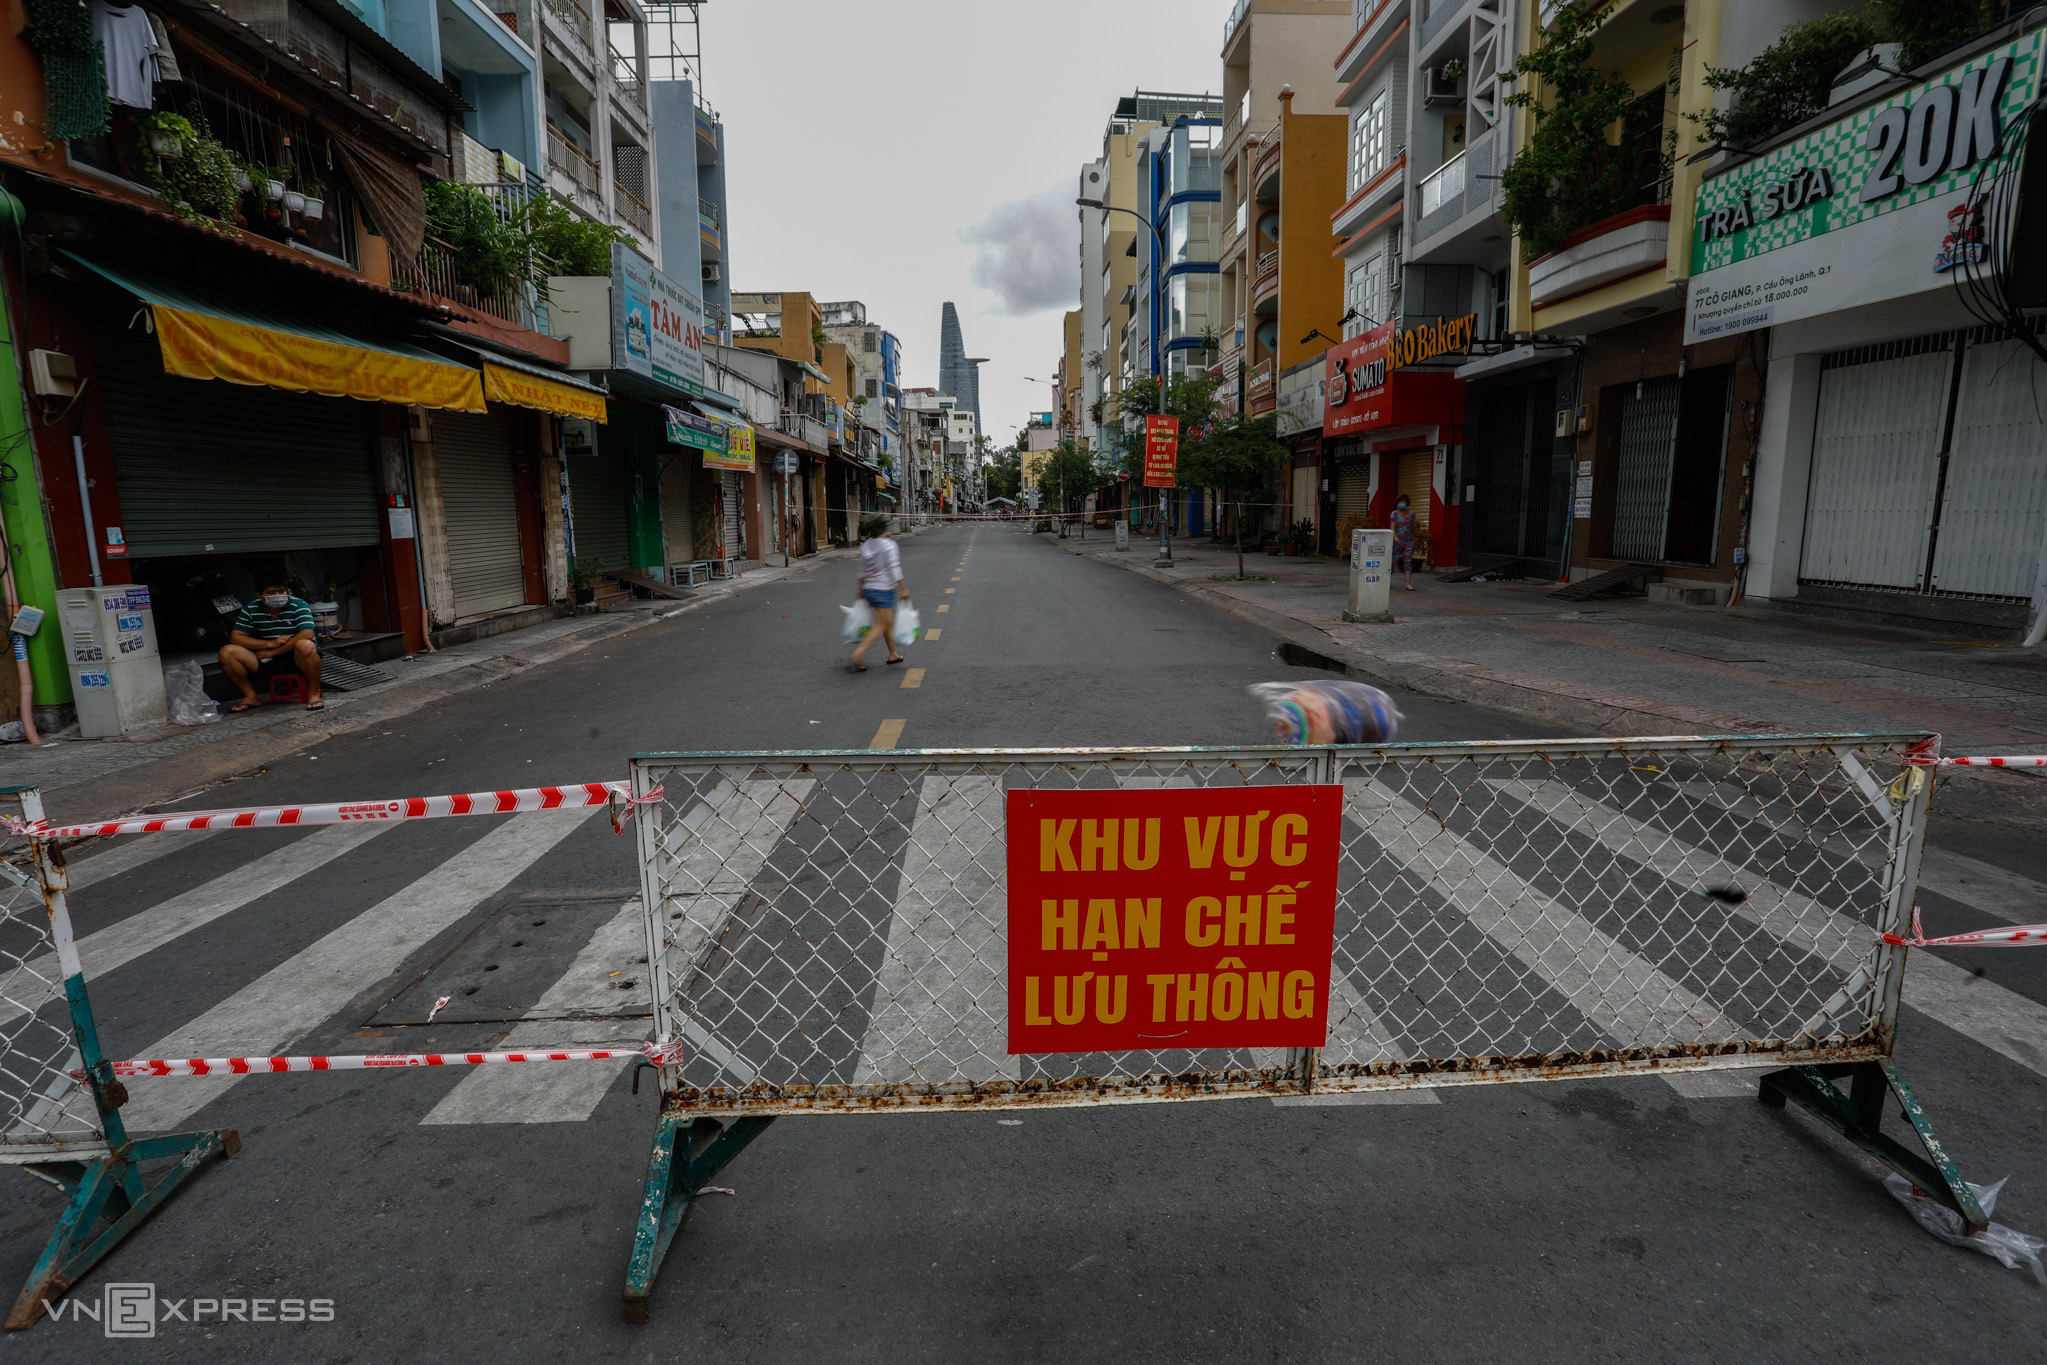 A section of Co Giang Street in downtown District 1 is blocked to restrict traffic to contain Covid-19 spread, July 9, 2021. Photo by VnExpress/Huu Khoa.